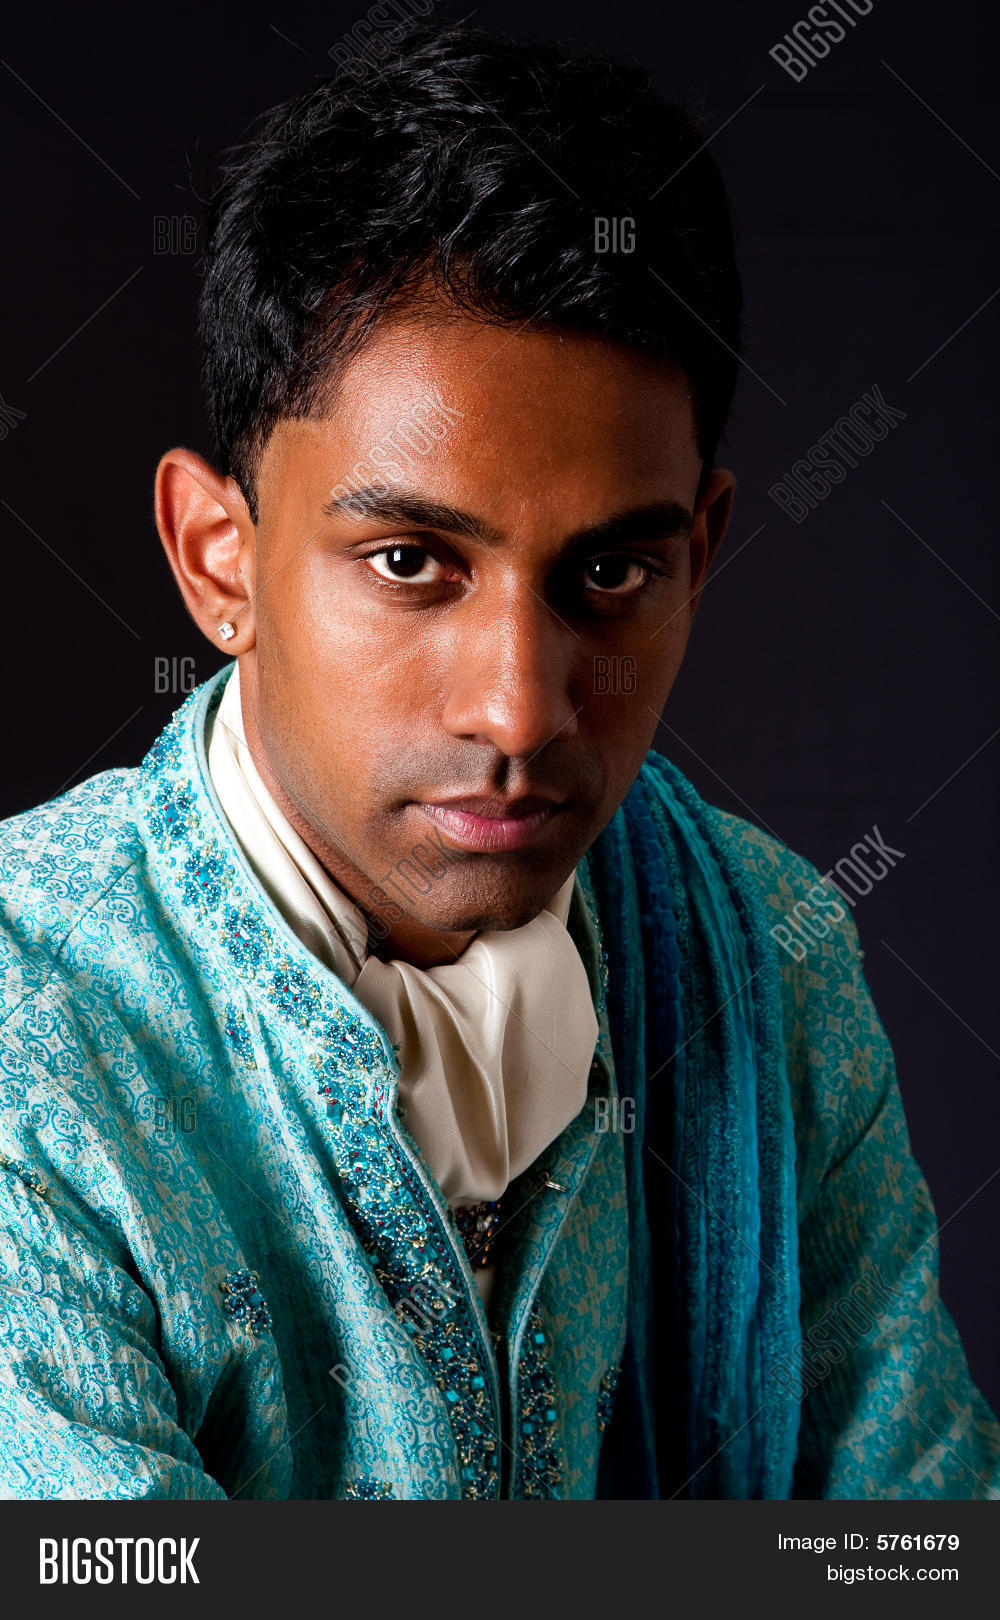 hindu single men in jamestown Jamestown, nd (1548) 288:  research has shown in lab studies that men are rated higher for the same  i cannot think of a single benefit of living in an.